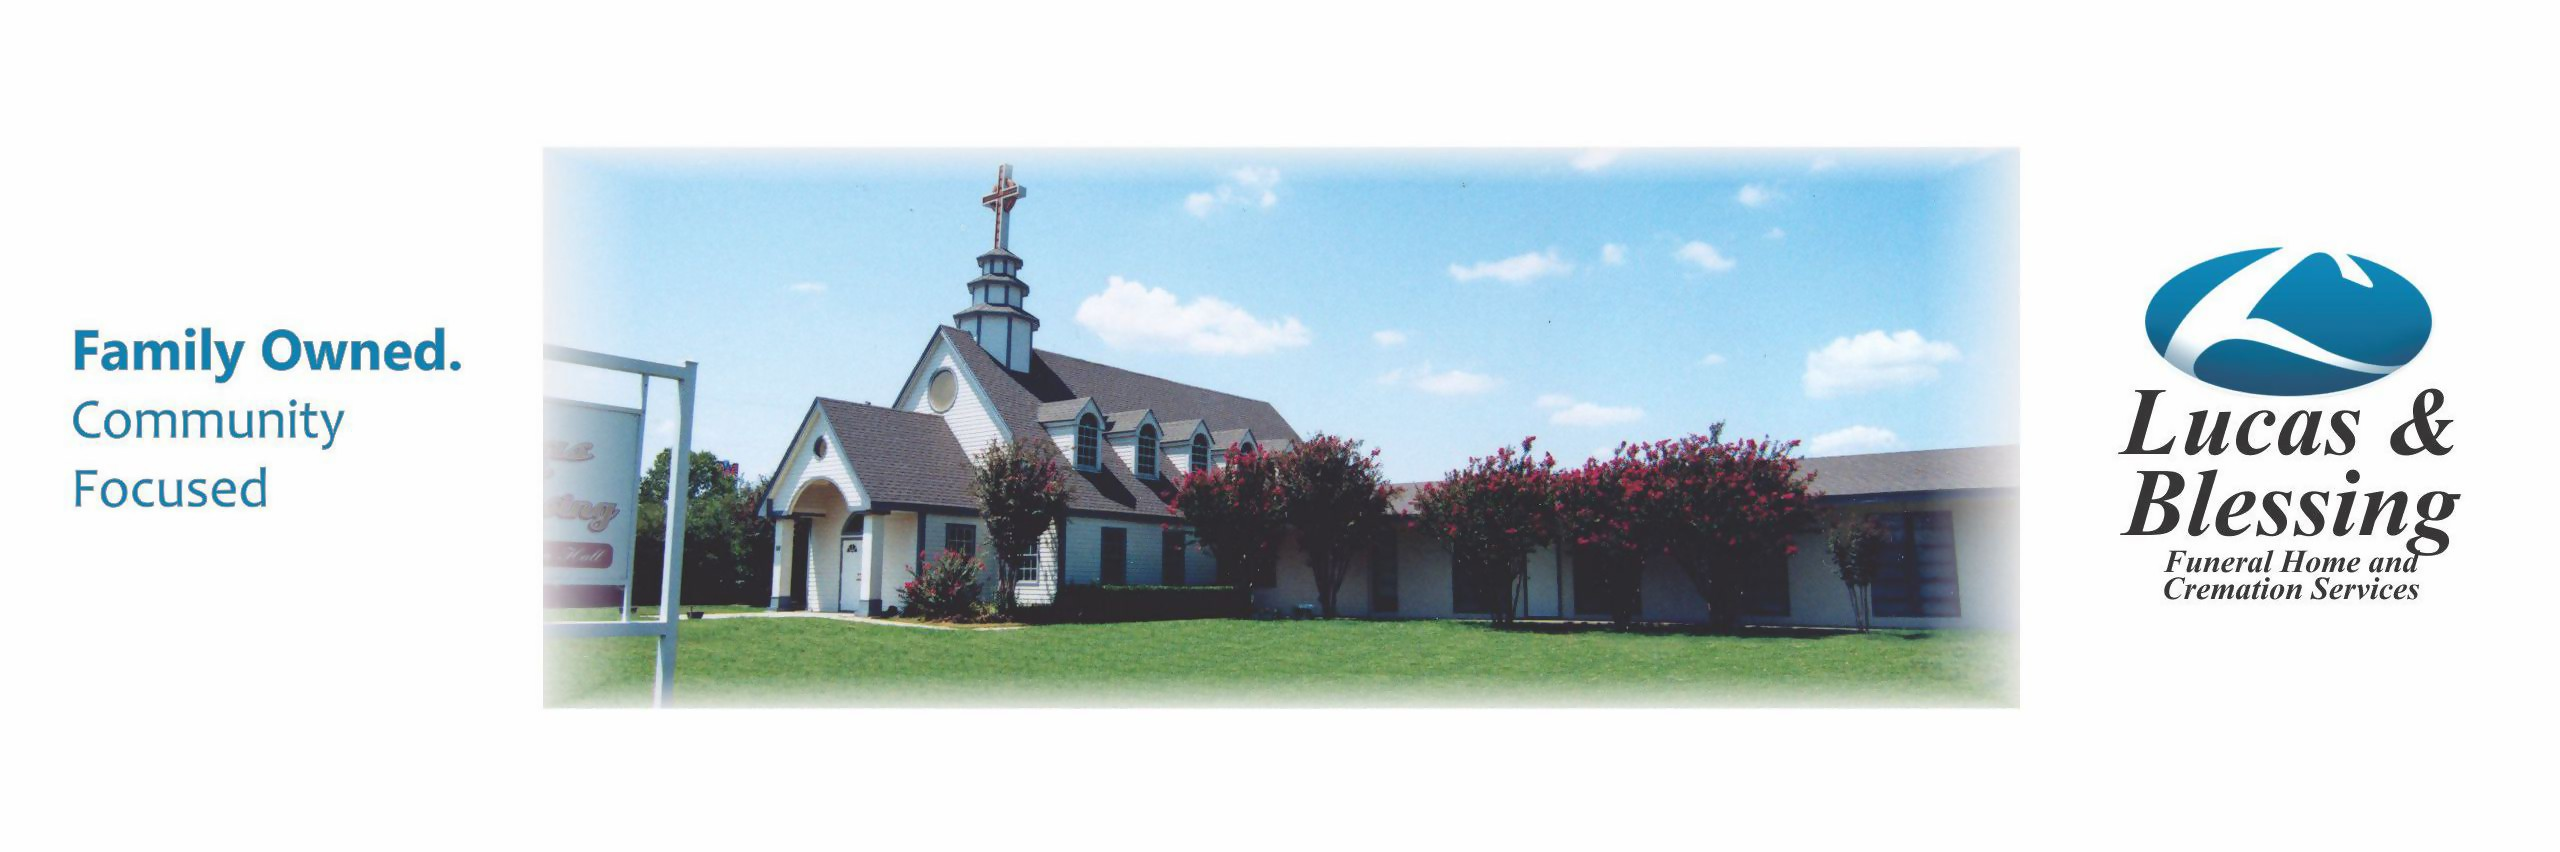 Lucas & Blessing Funeral Home